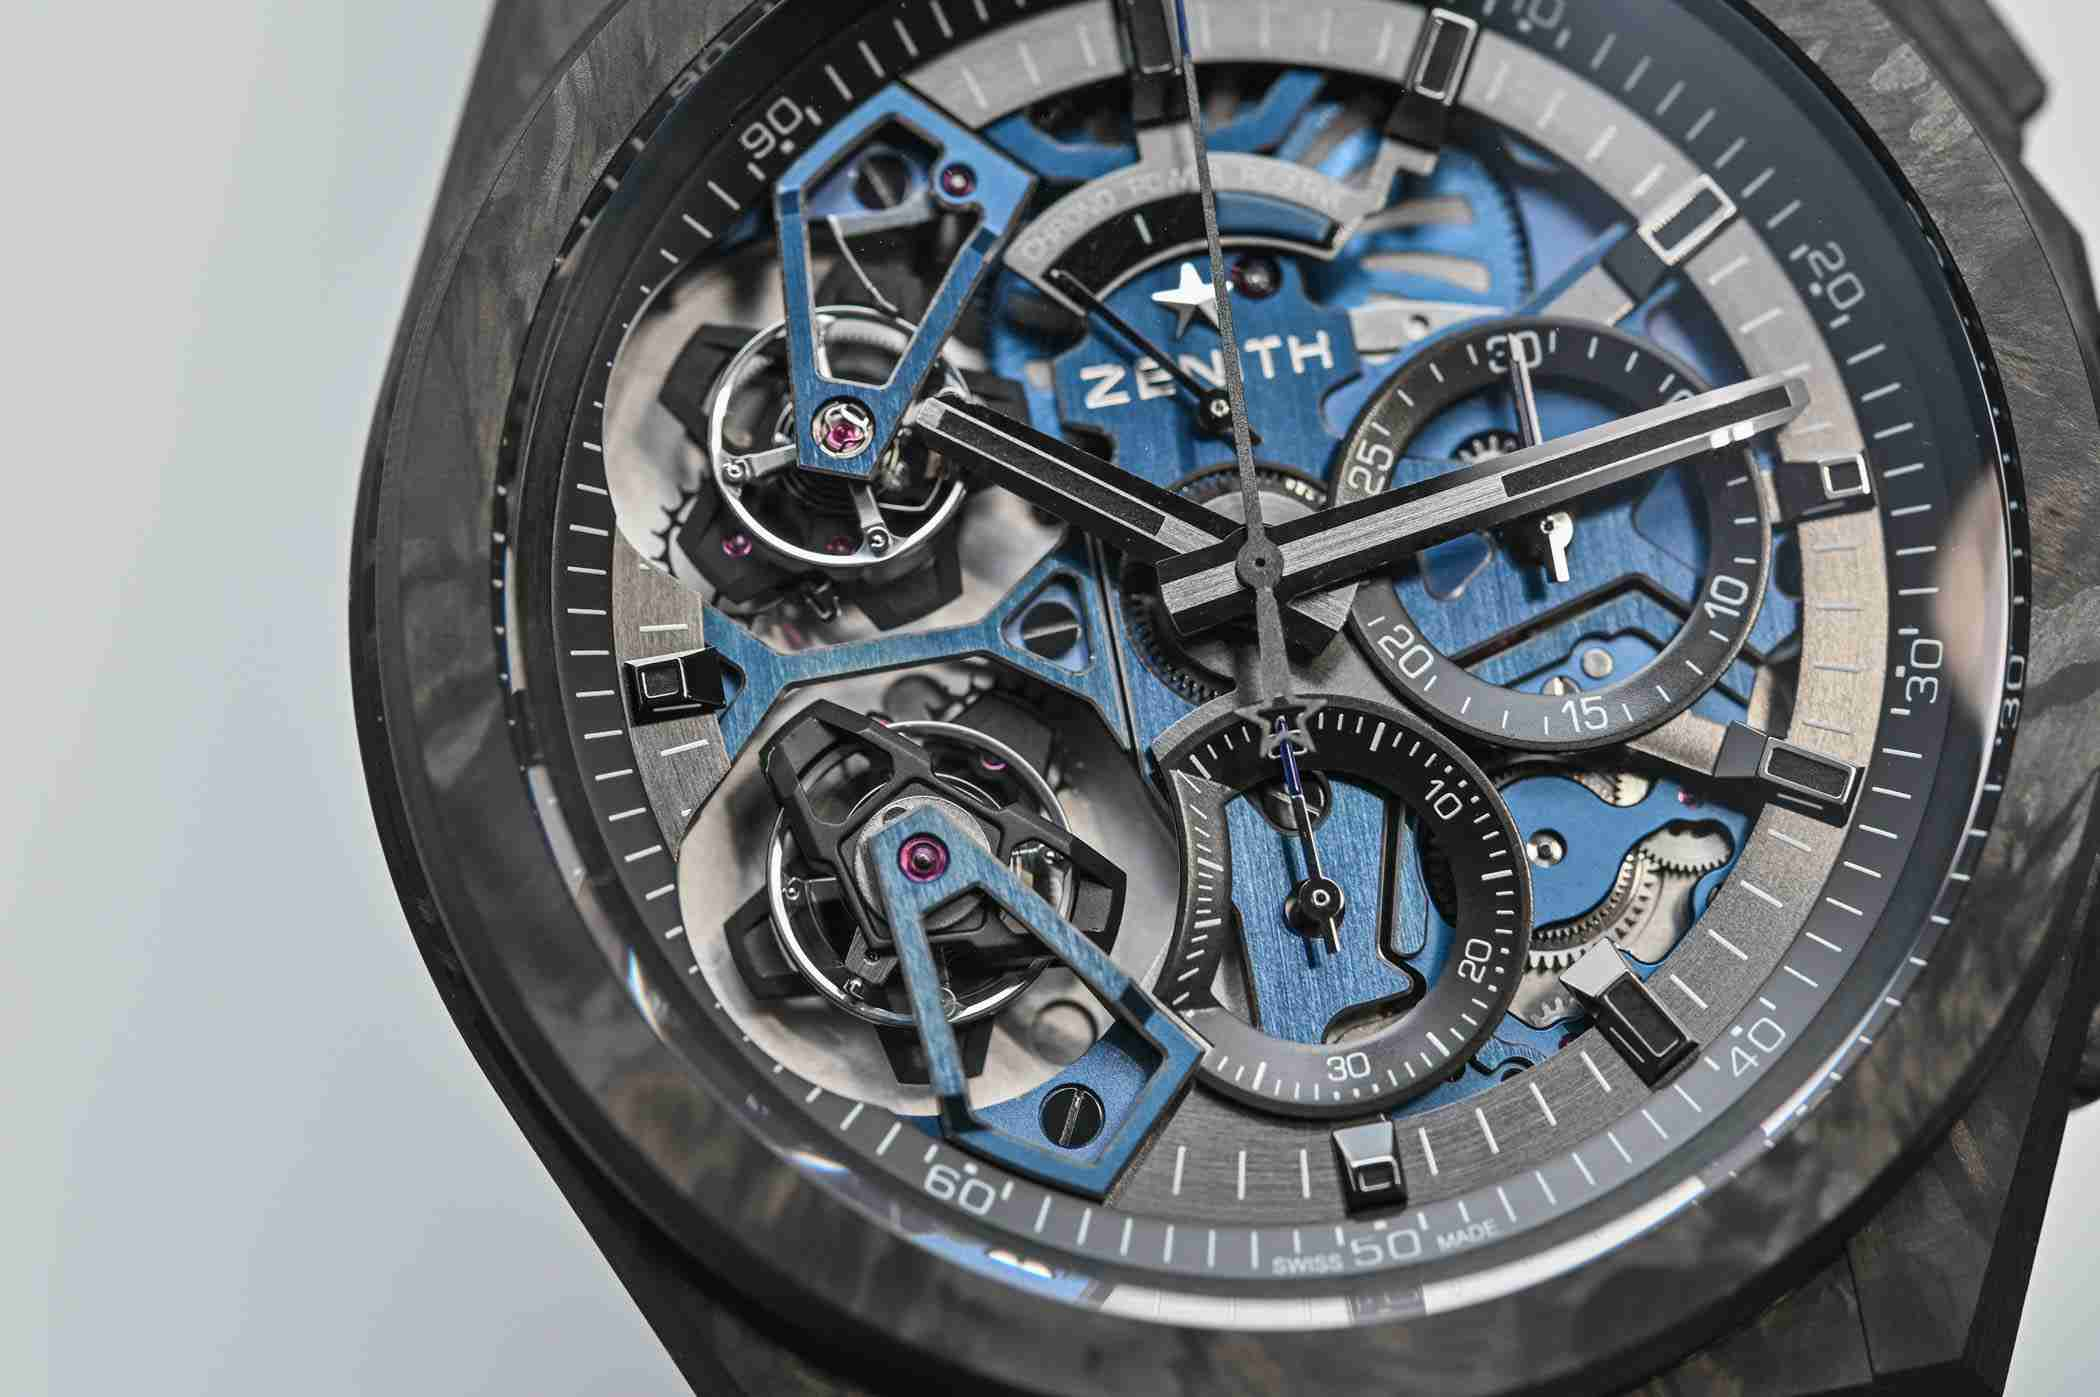 Zenith Defy El Primero Double Tourbillon Automatic Black Carbon And Platinum Replica Watches For 2019 Good Friday 2.jpg